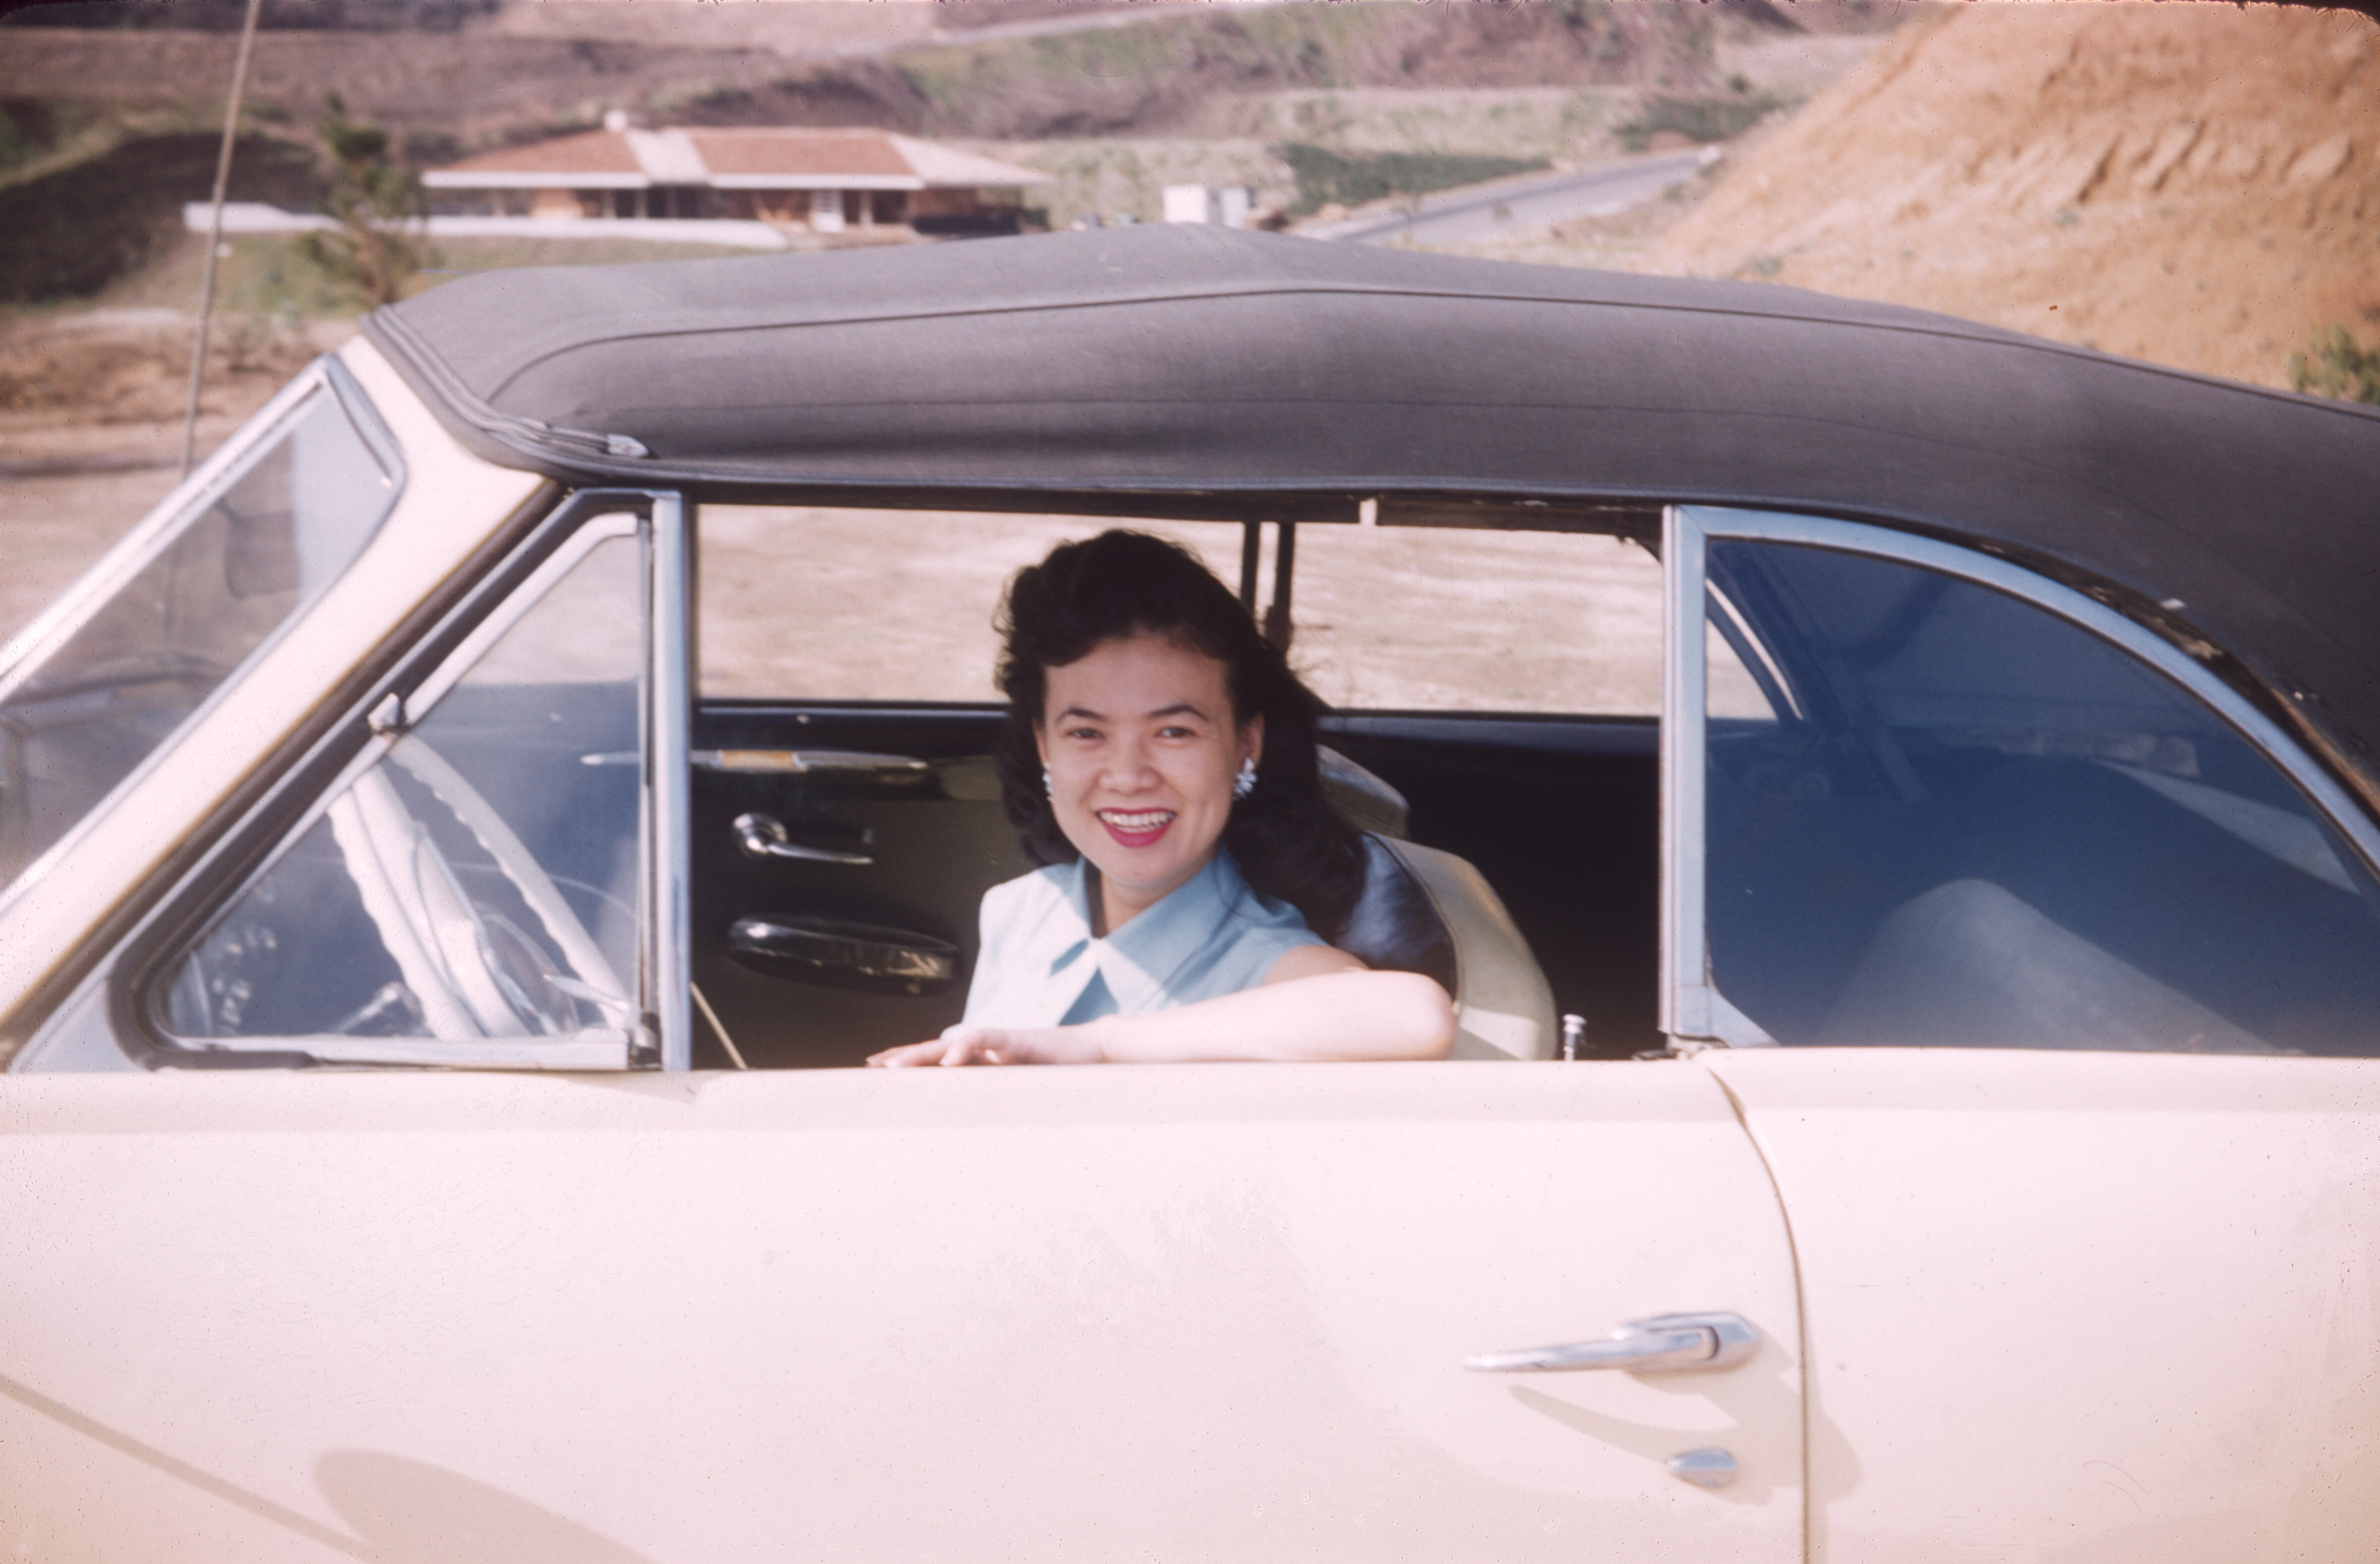 Kazuko in her '49 Ford convertible, Jan 1957